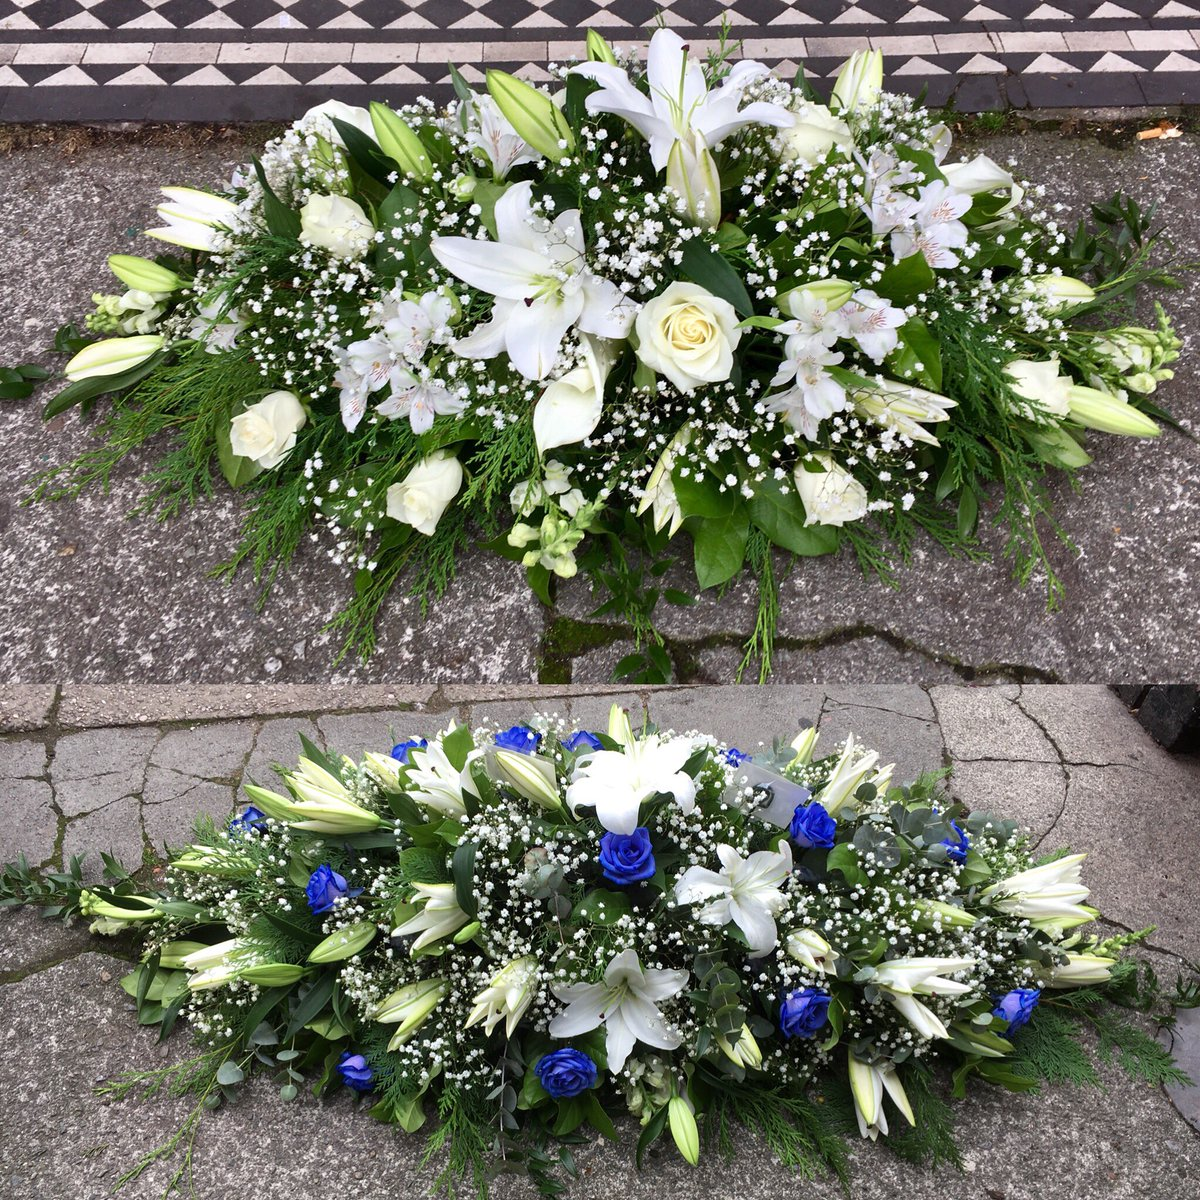 Funeralflowers hashtag on twitter i offer free home visits for those who would prefer a private consultation 01512599393 bouquetboutiqueliverpool liverpoolflorist funeralflowers tributes izmirmasajfo